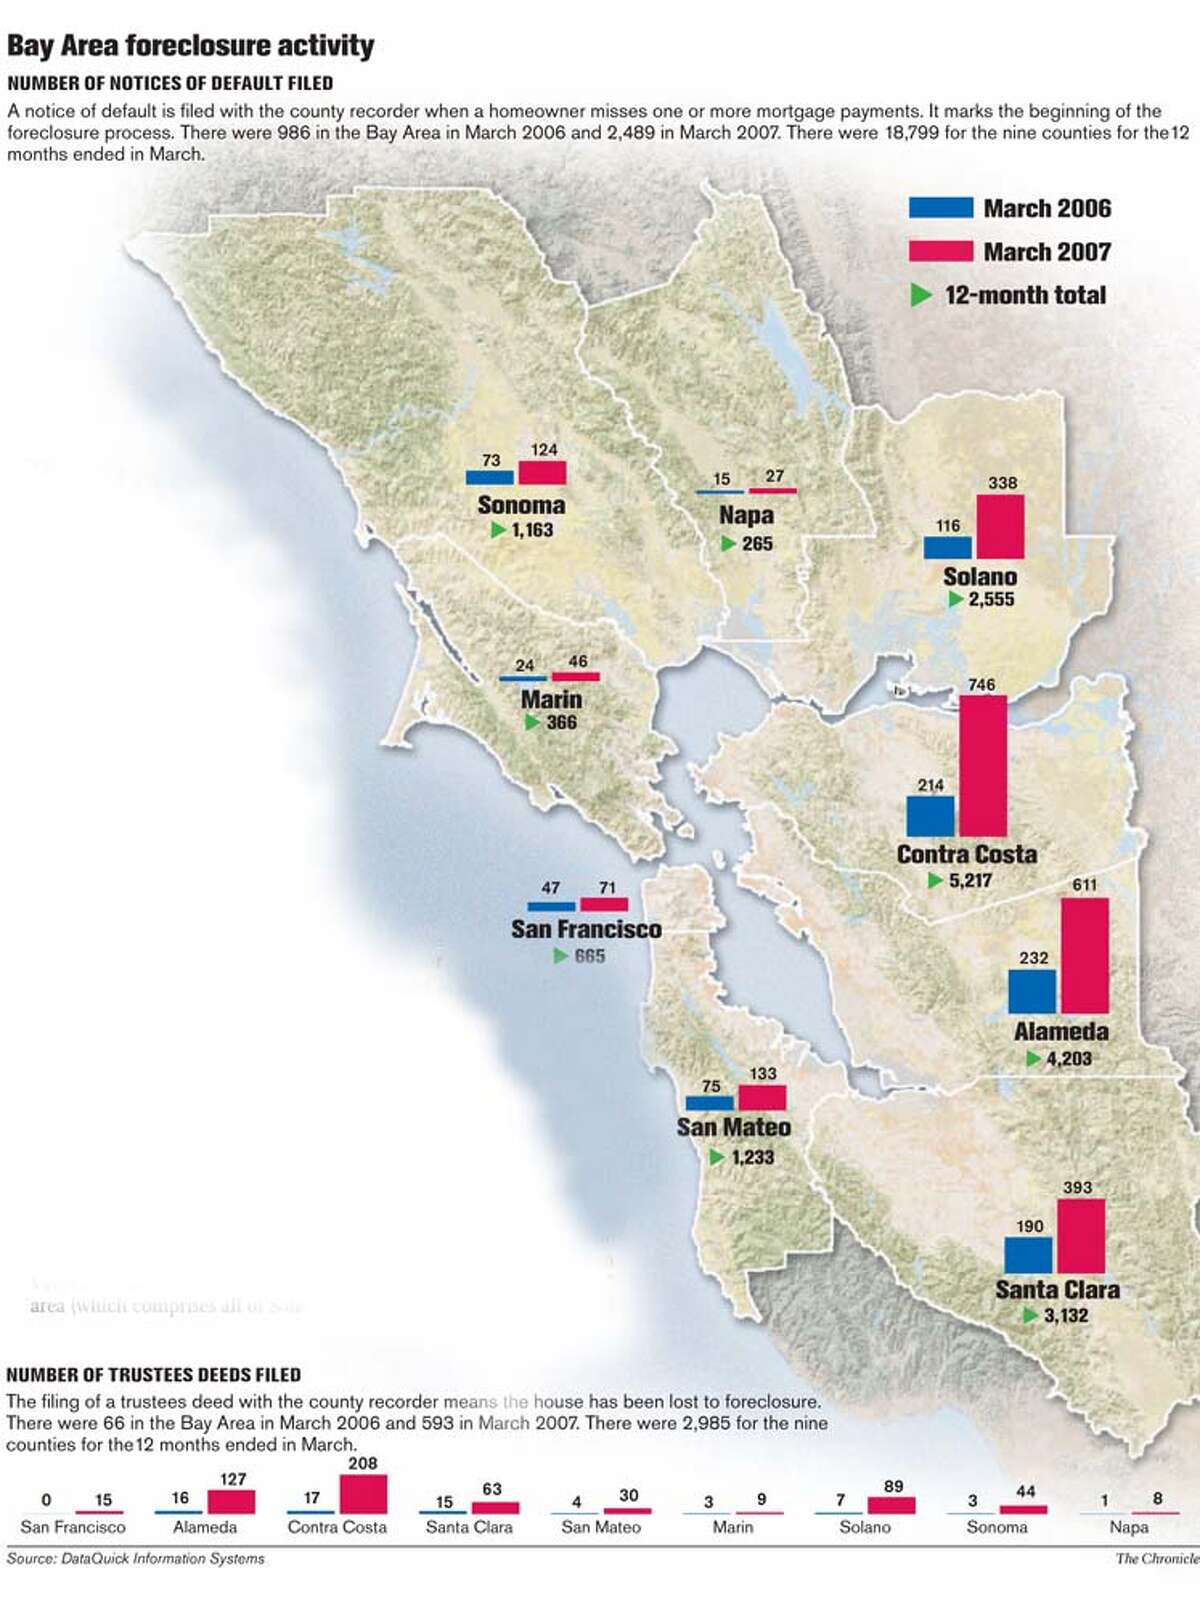 Bay Area Foreclosure Activity. Chronicle Graphic